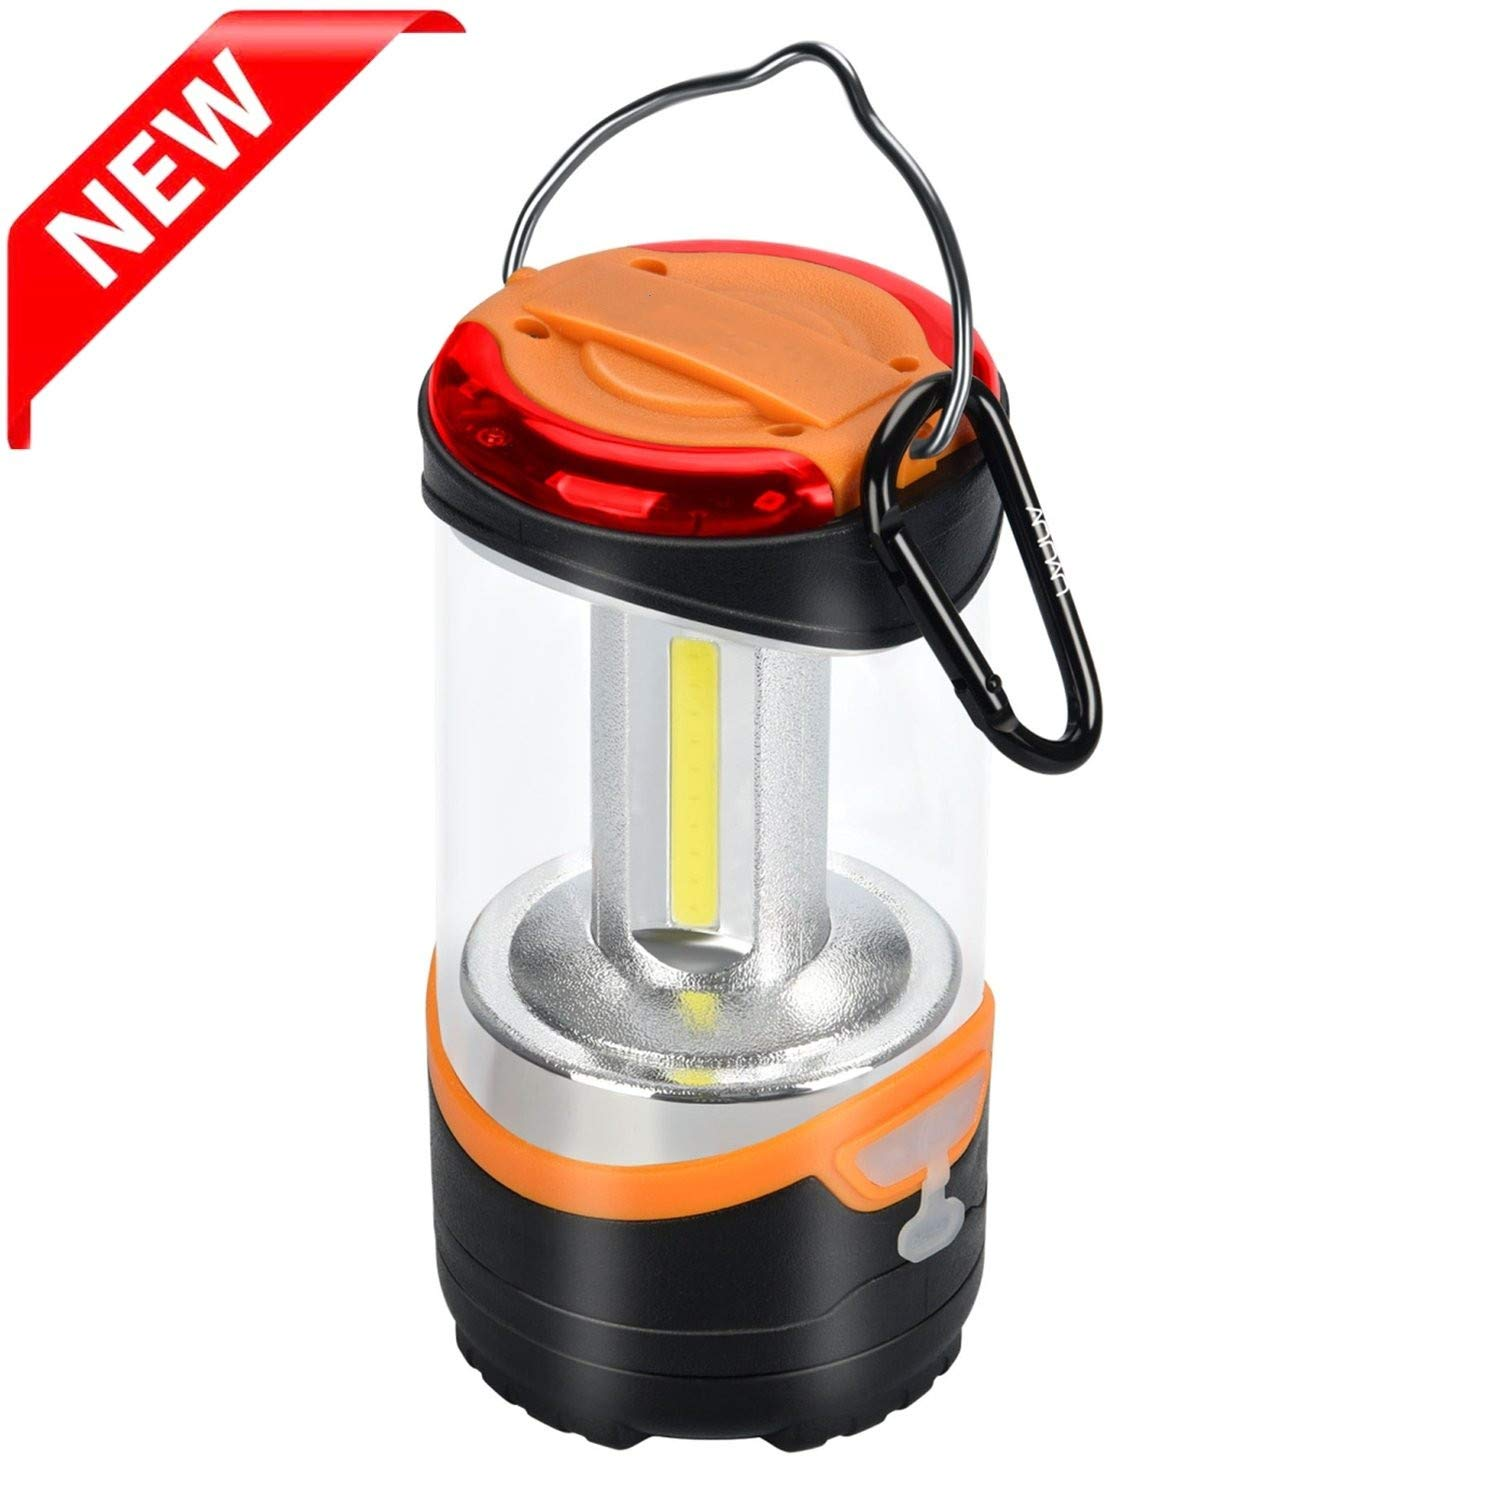 Youtree LED Camping Lantern Rechargeable Outdoor Tent Light with Portable Hook 3 Modes Include Red Flash Great for Hiking or Home Emergency Lighting Light